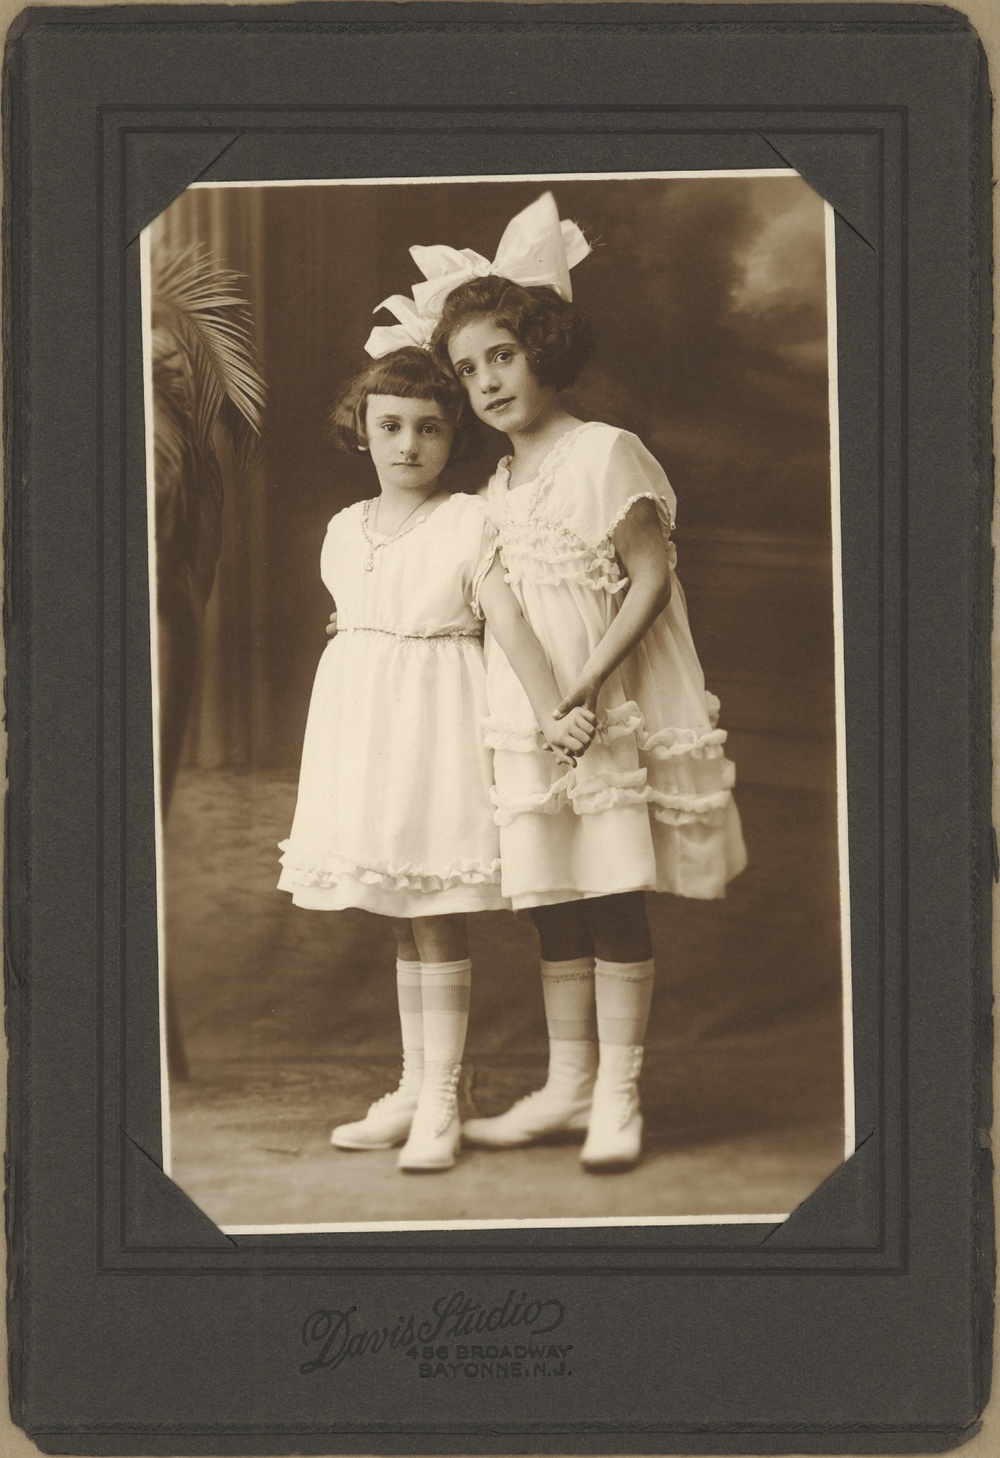 1920s Bayonne, NJ Either Mildred or Rosalie on the left, cousin on the right.